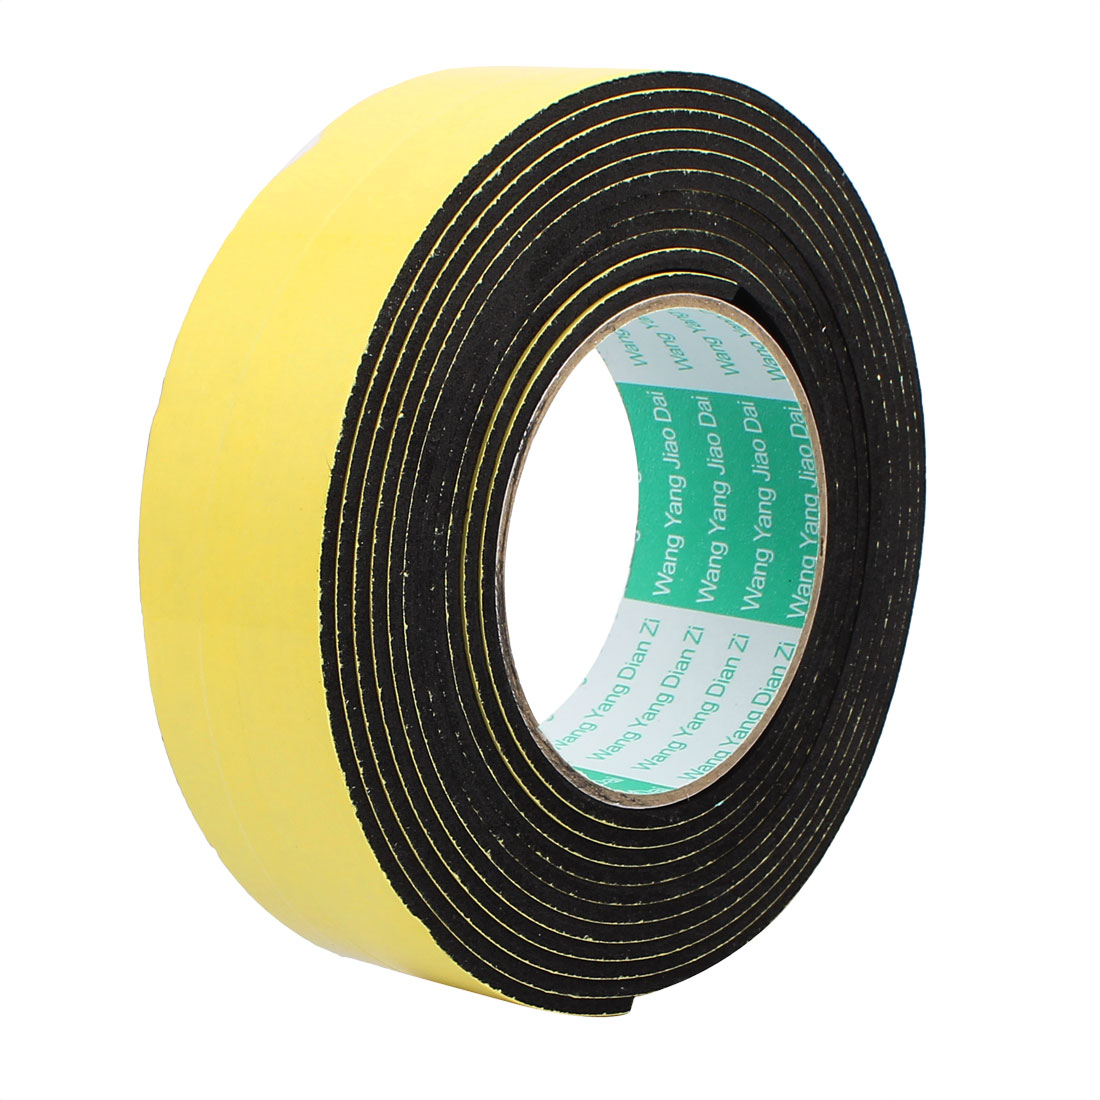 4M 40mm x 3mm Single-side Adhesive Shockproof Sponge Tape Yellow Black